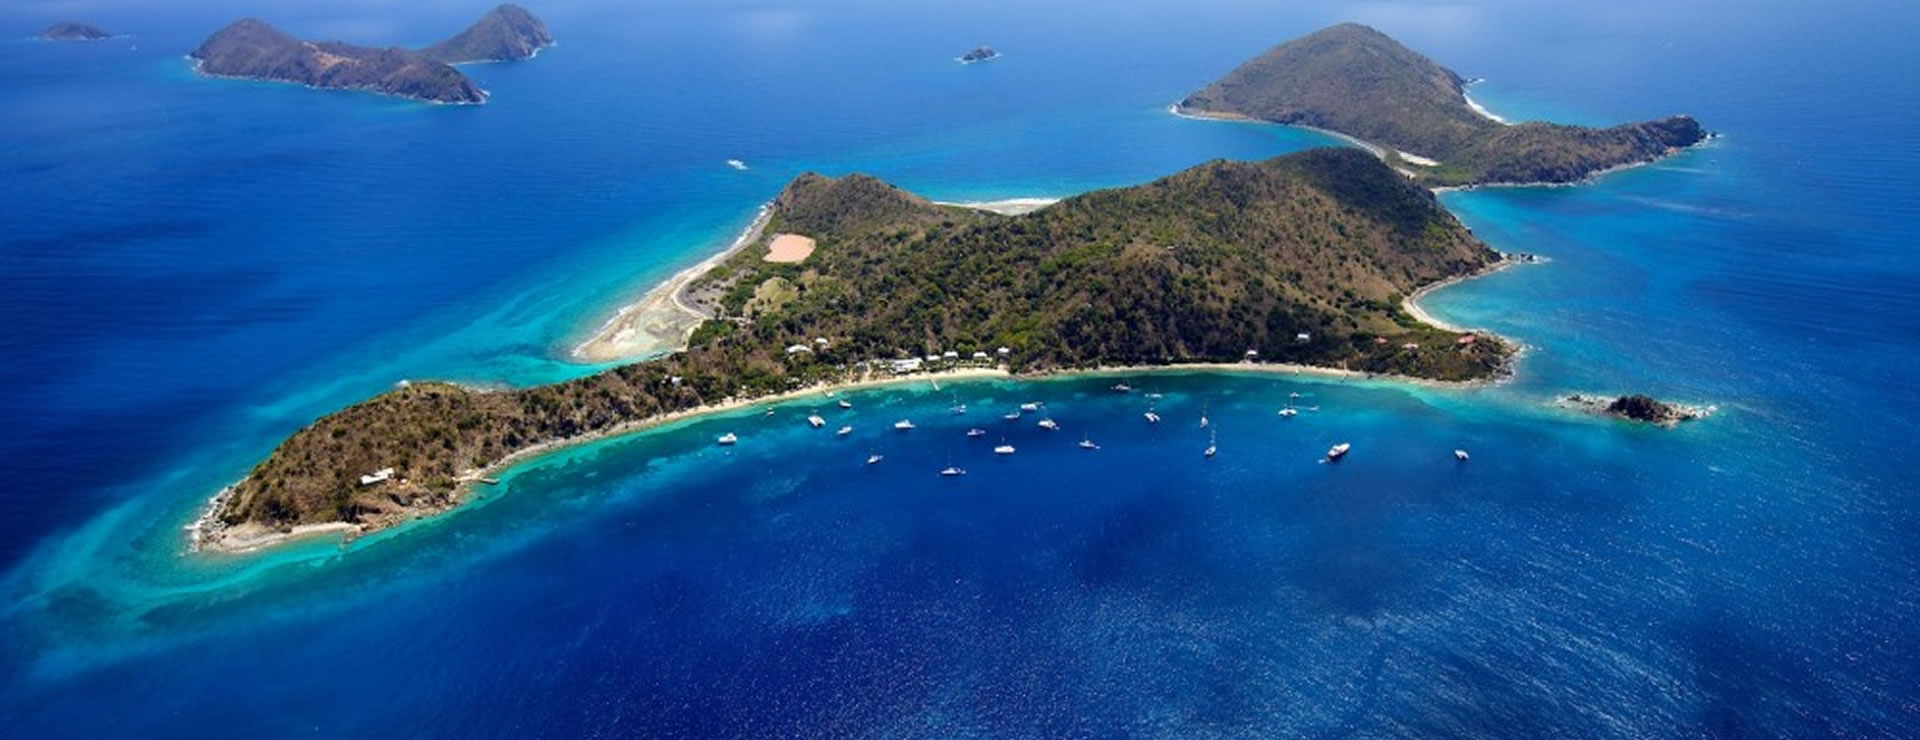 Must-see BVI Places